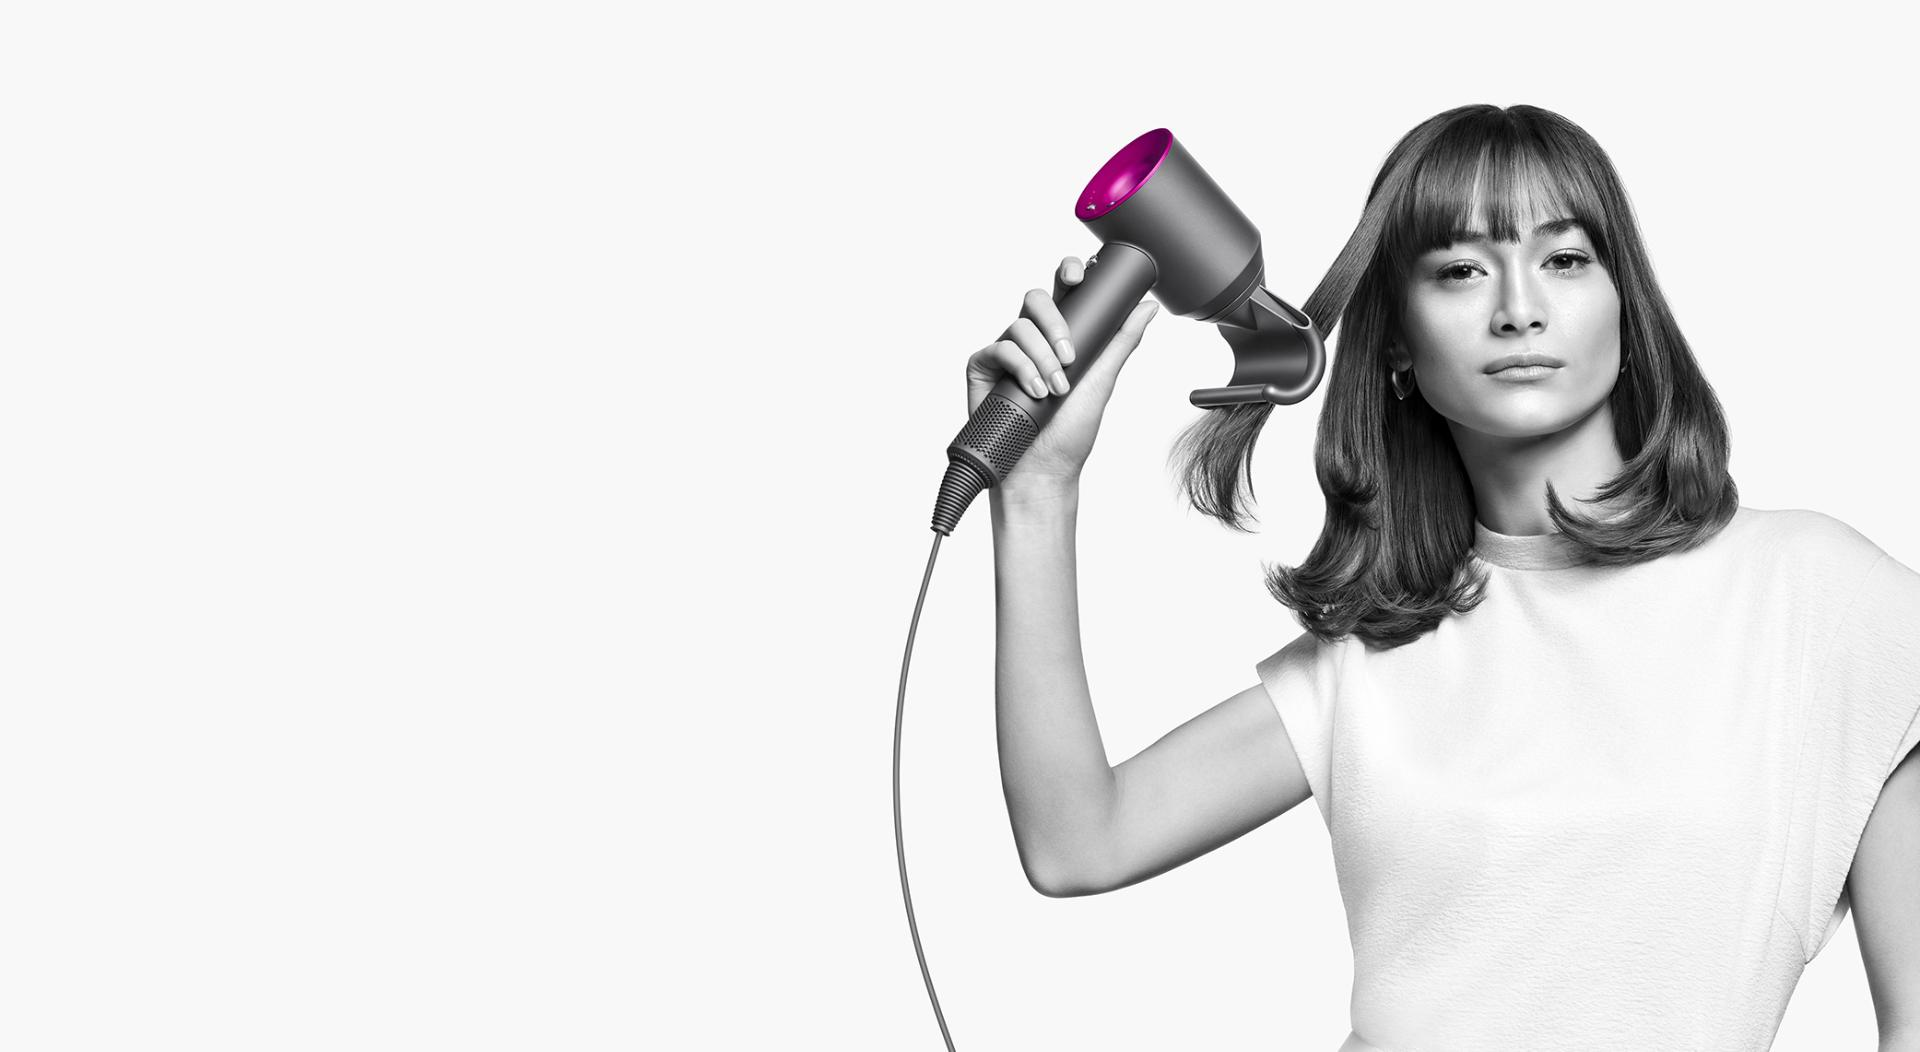 Model using a Dyson Supersonic with the new Flyaway attachment